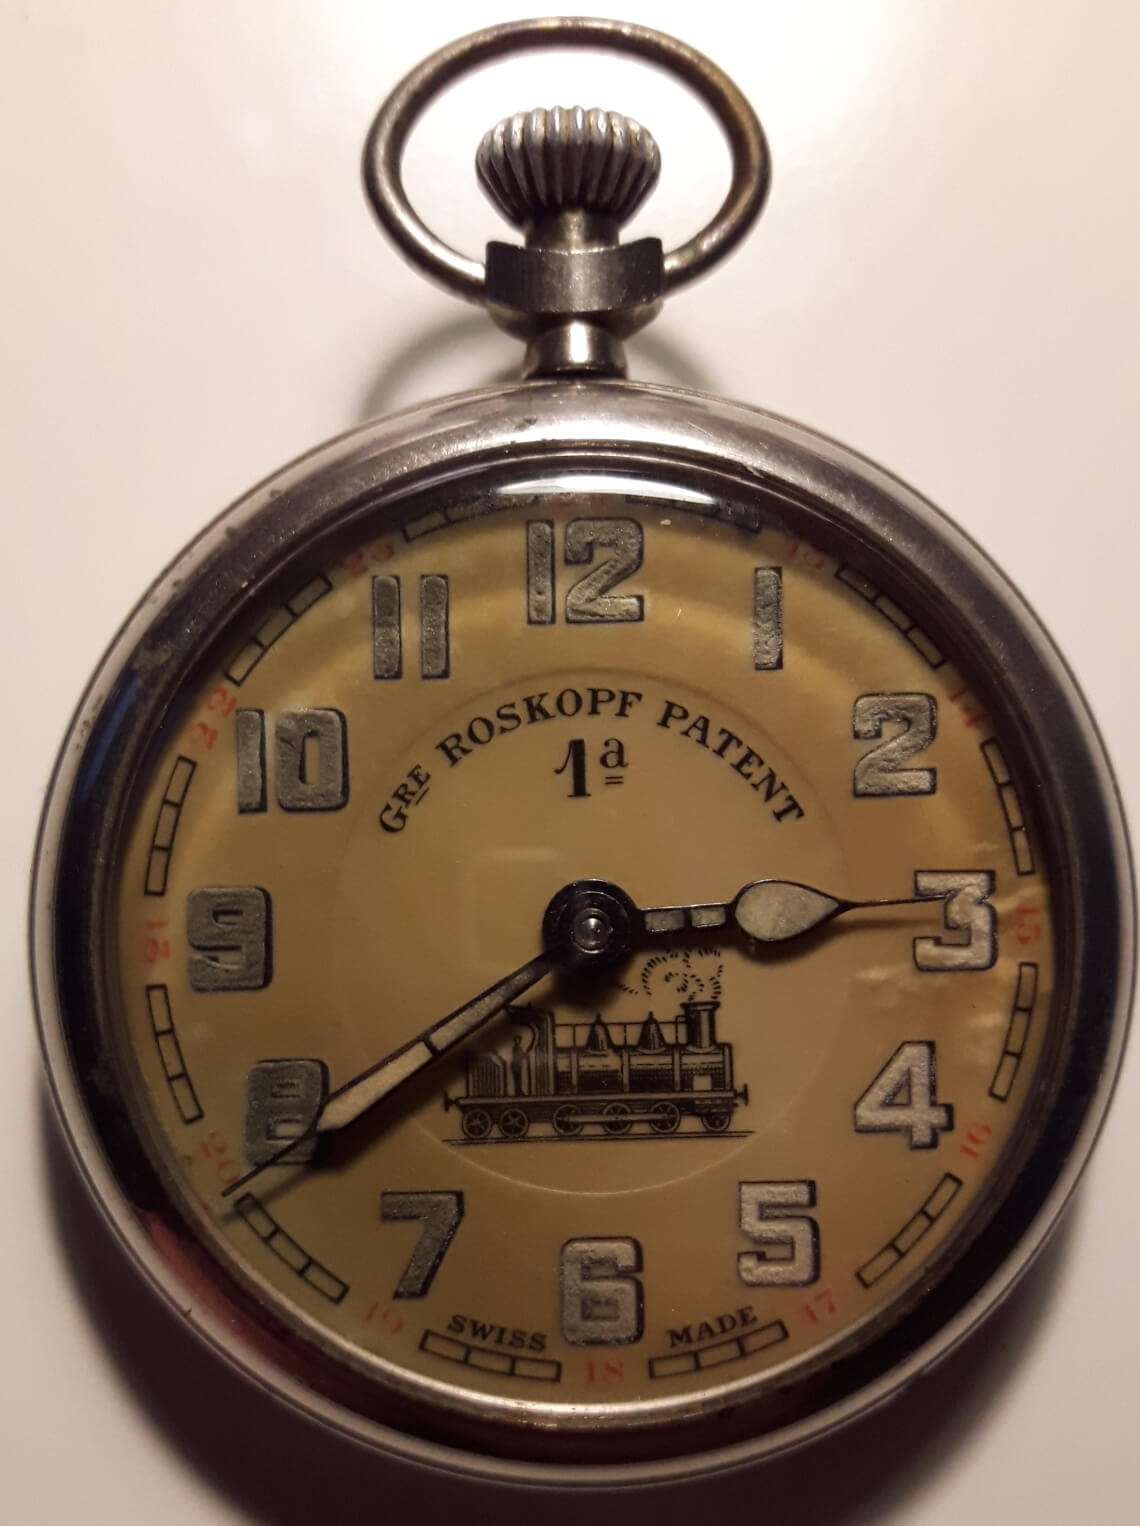 roskopf patent 1a pocketwatch swiss